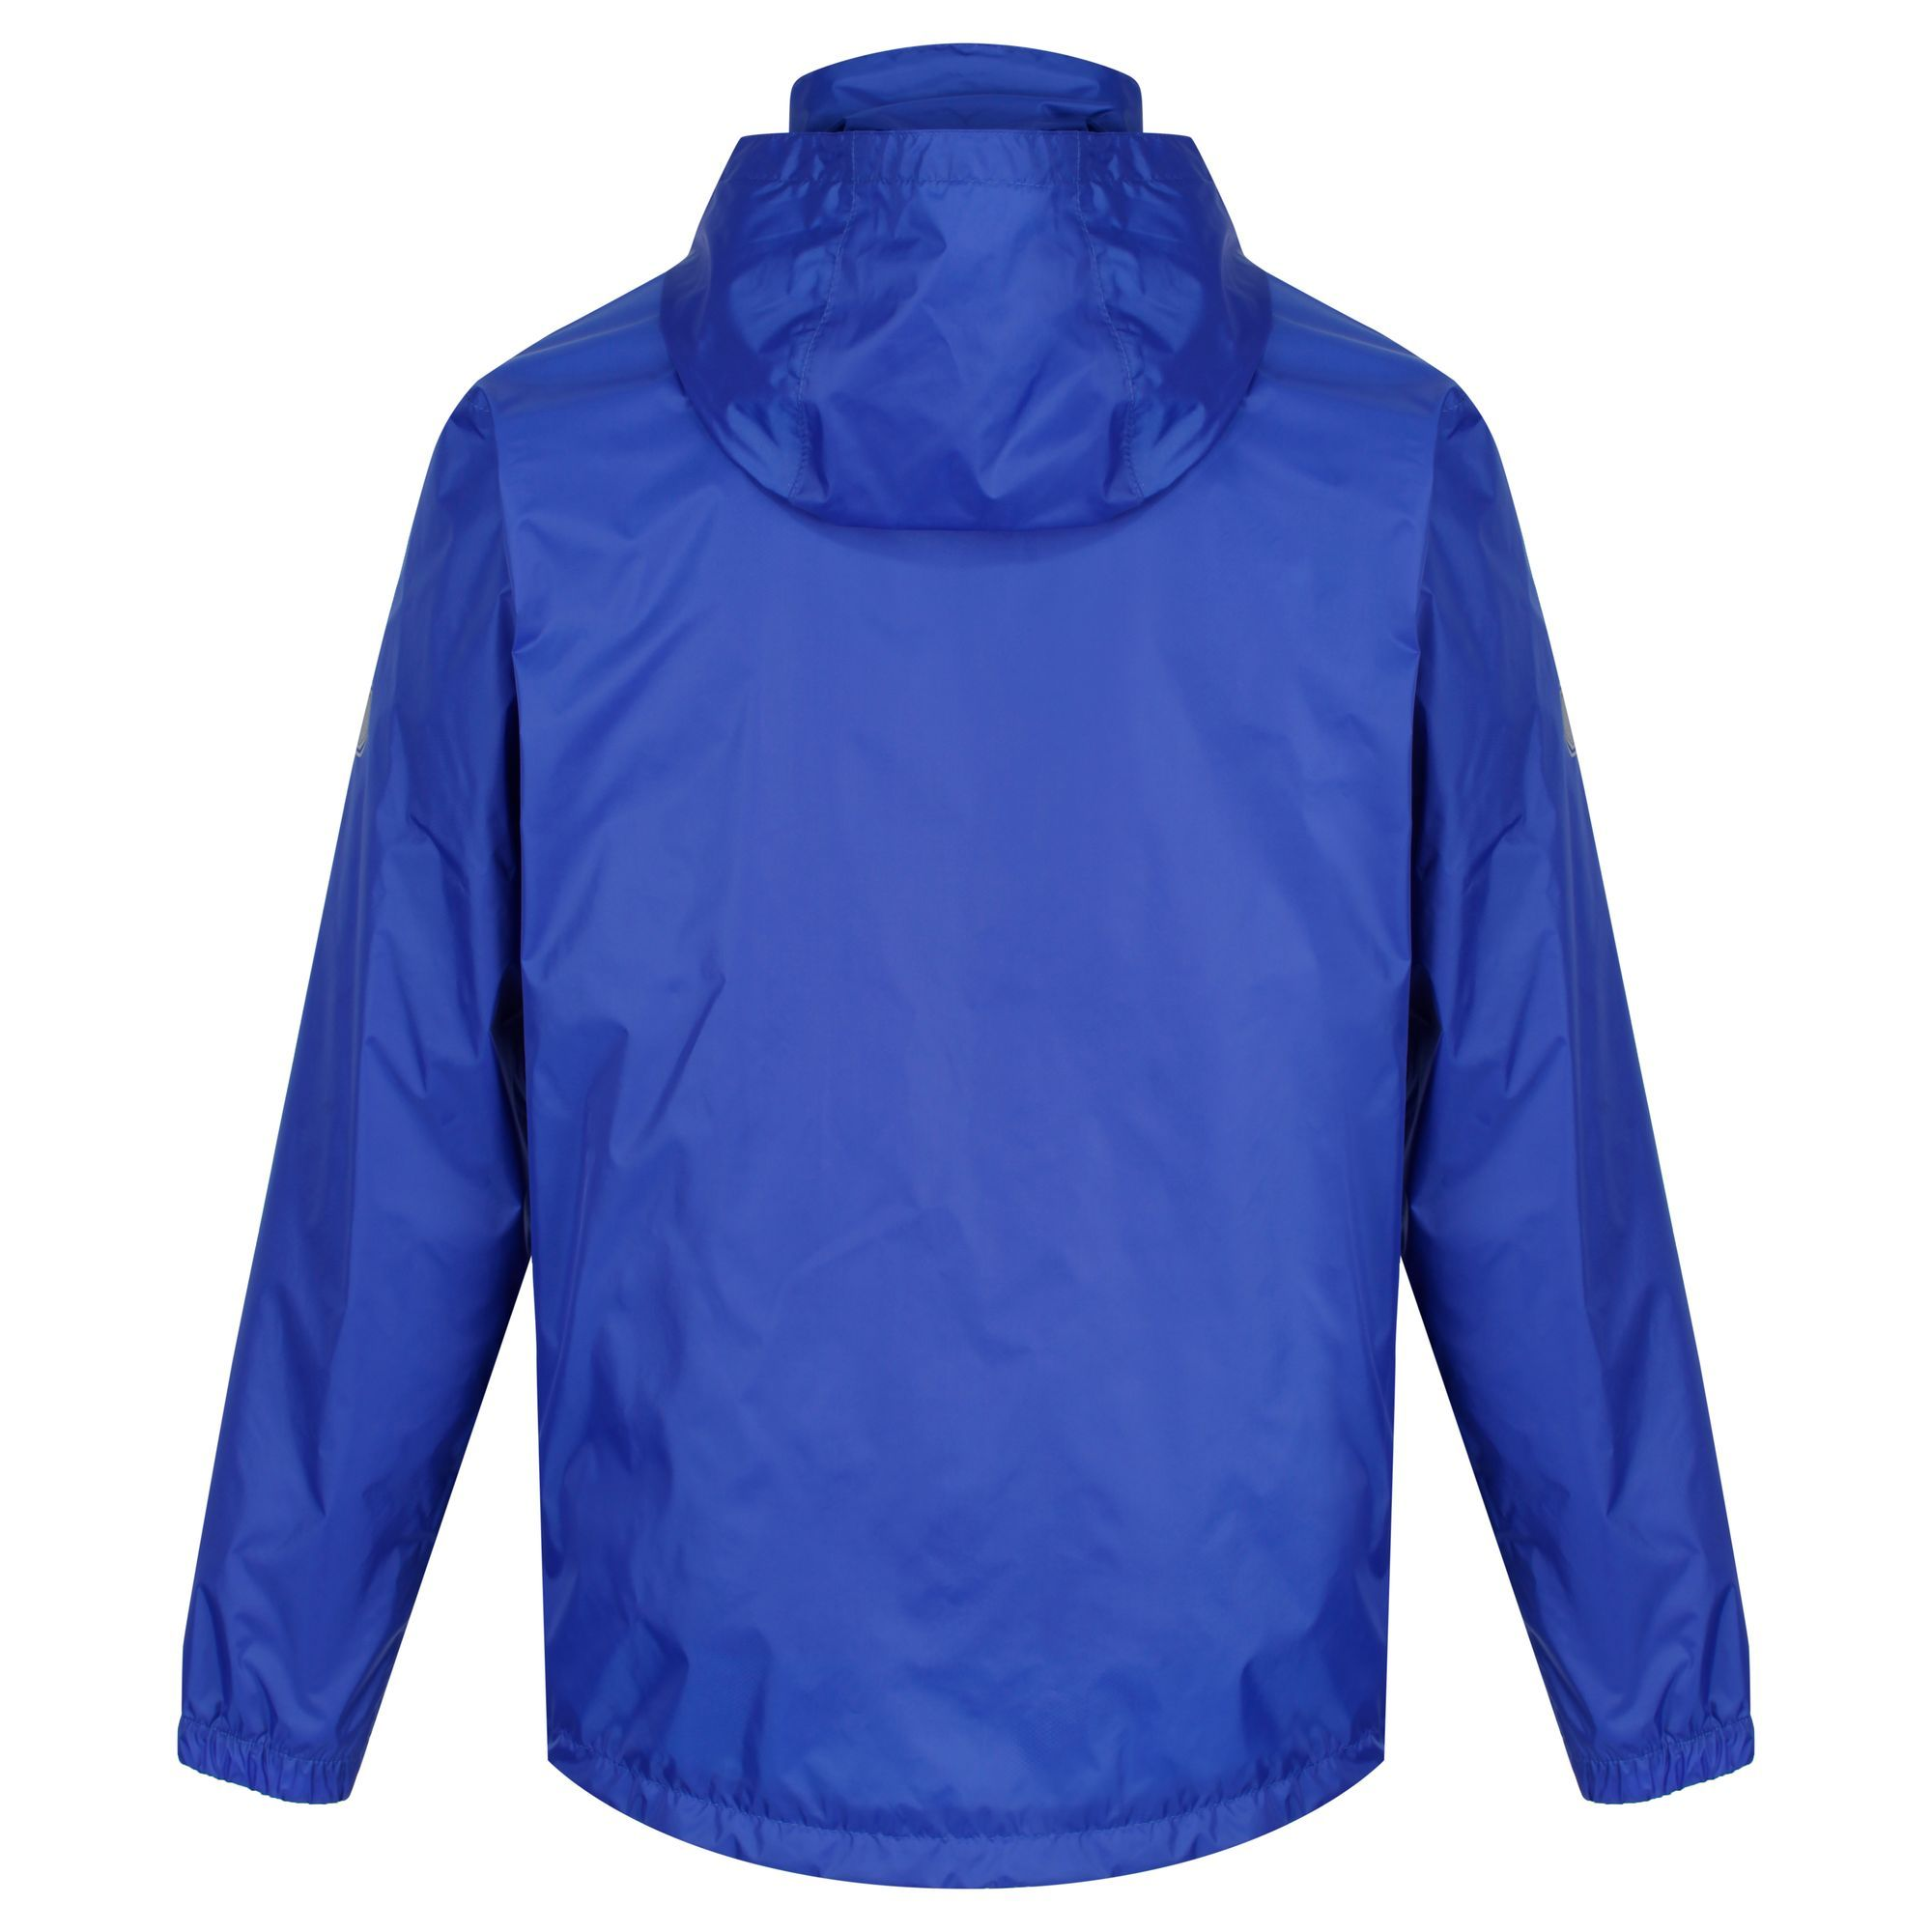 Mens-Regatta-Lightweight-Waterproof-Windproof-Jacket-Clearance-RRP-70-00 thumbnail 42